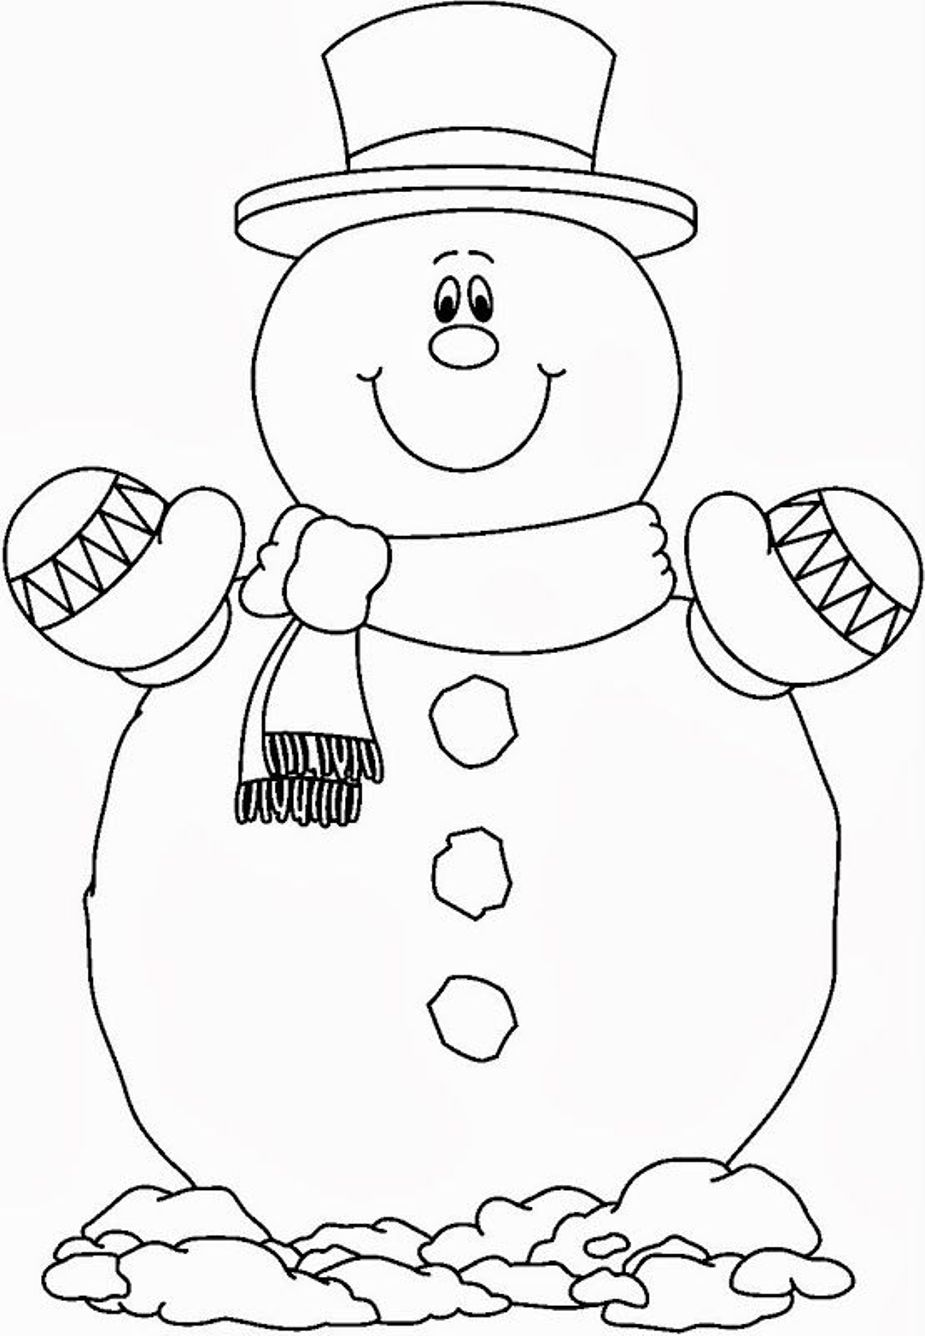 free coloring pages snowman snowman coloring pages to download and print for free